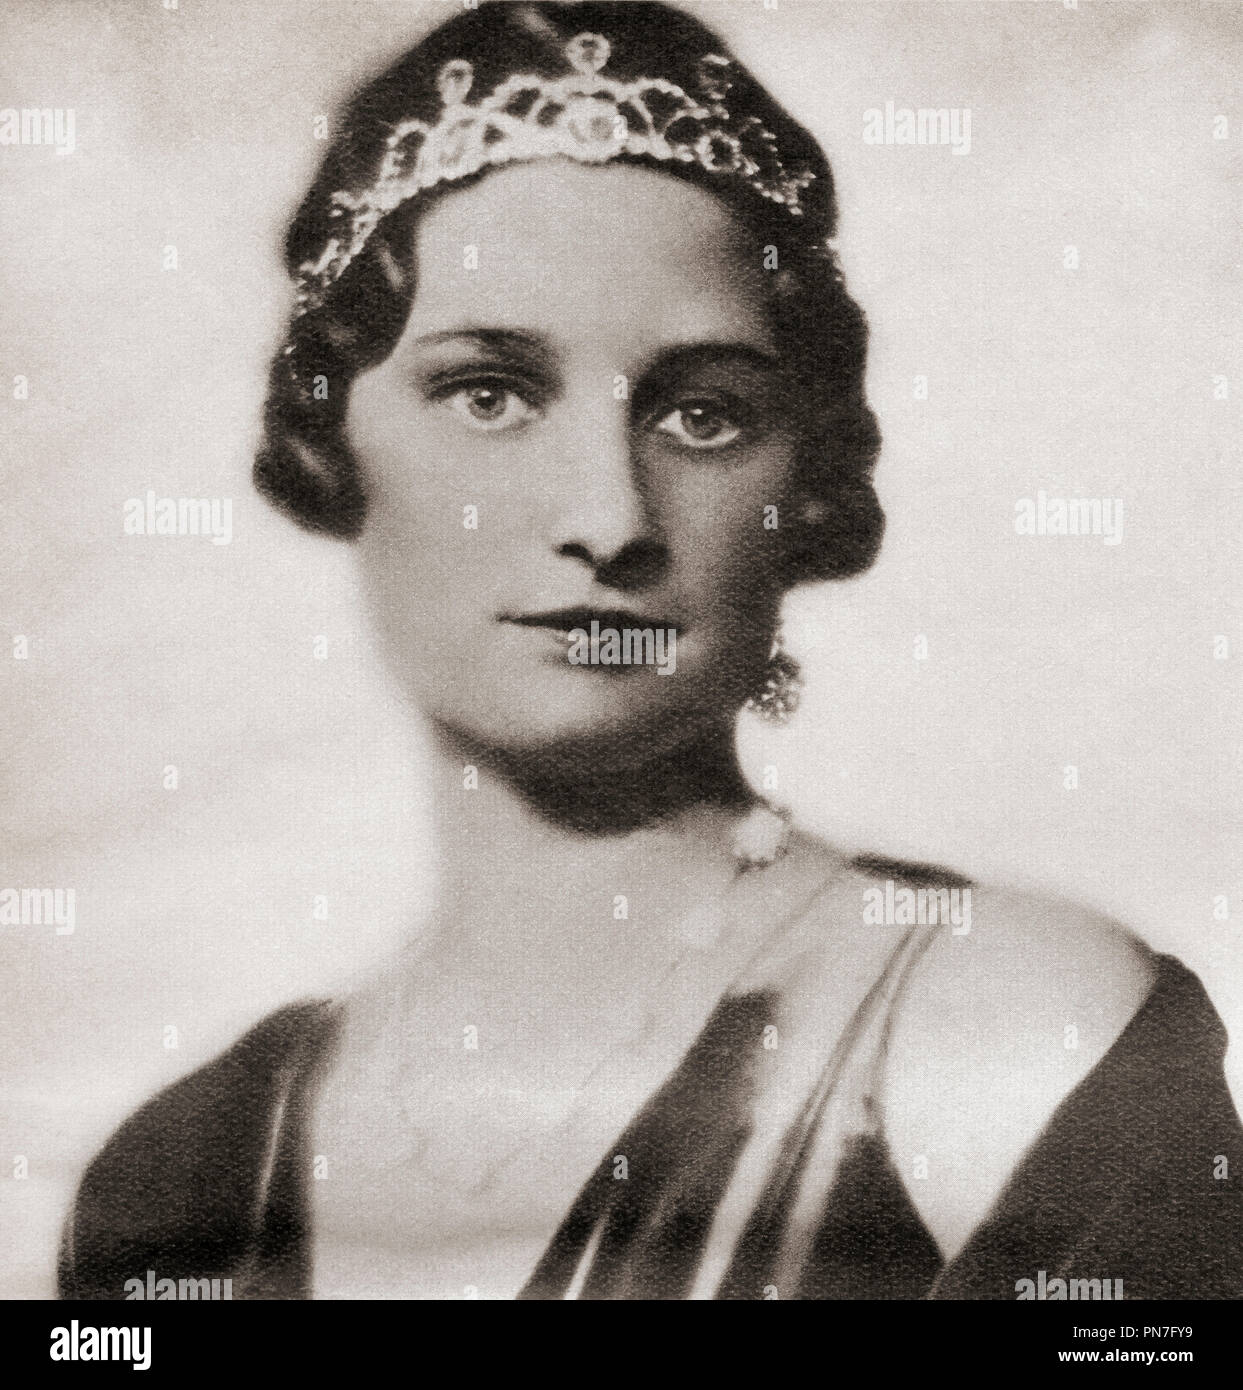 Astrid of Sweden, 1905 – 1935. Queen of the Belgians as the first wife of King Leopold III.  From These Tremendous Years, published 1938. - Stock Image